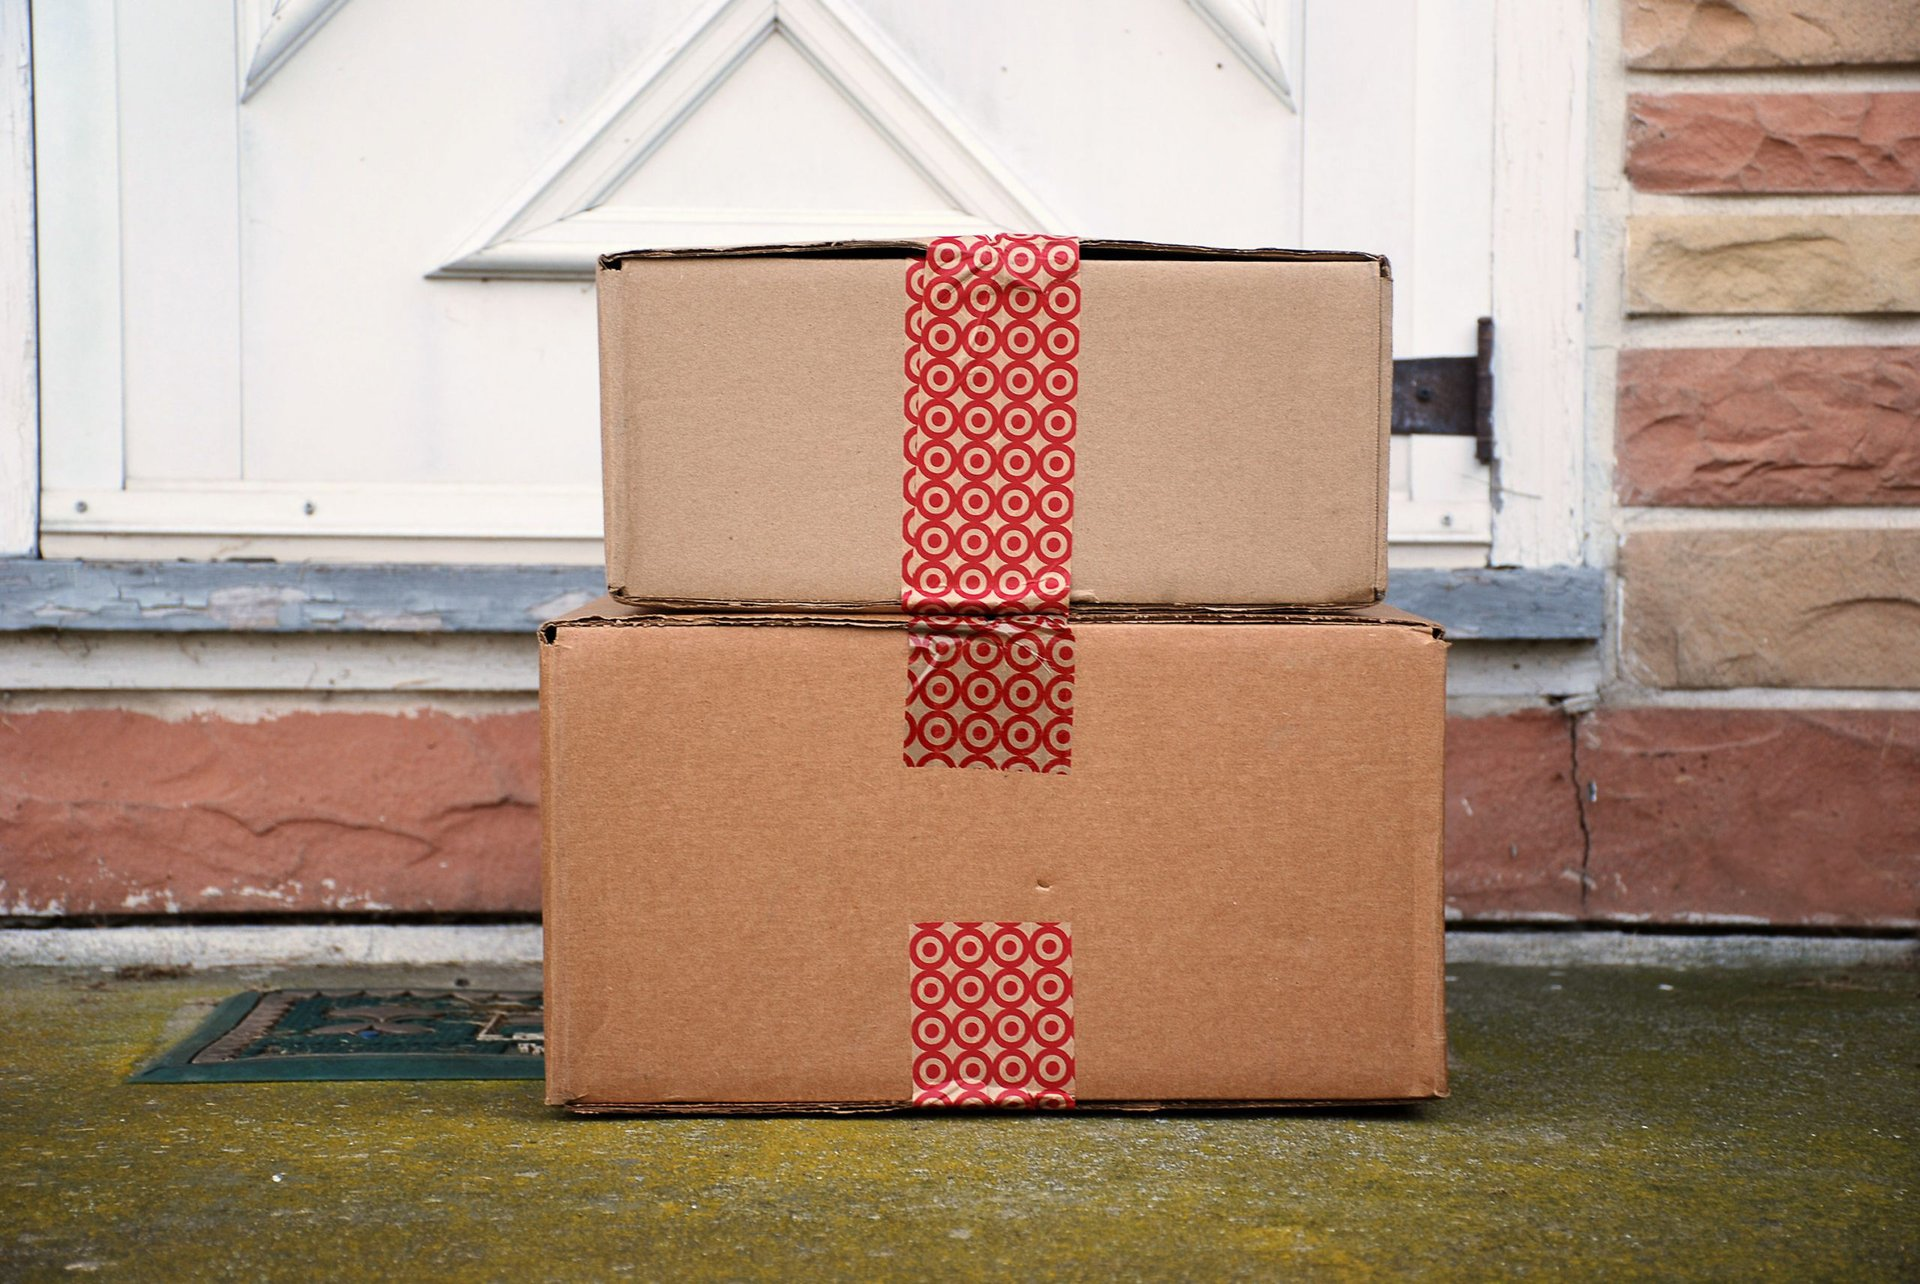 Target packages delivered to a front door